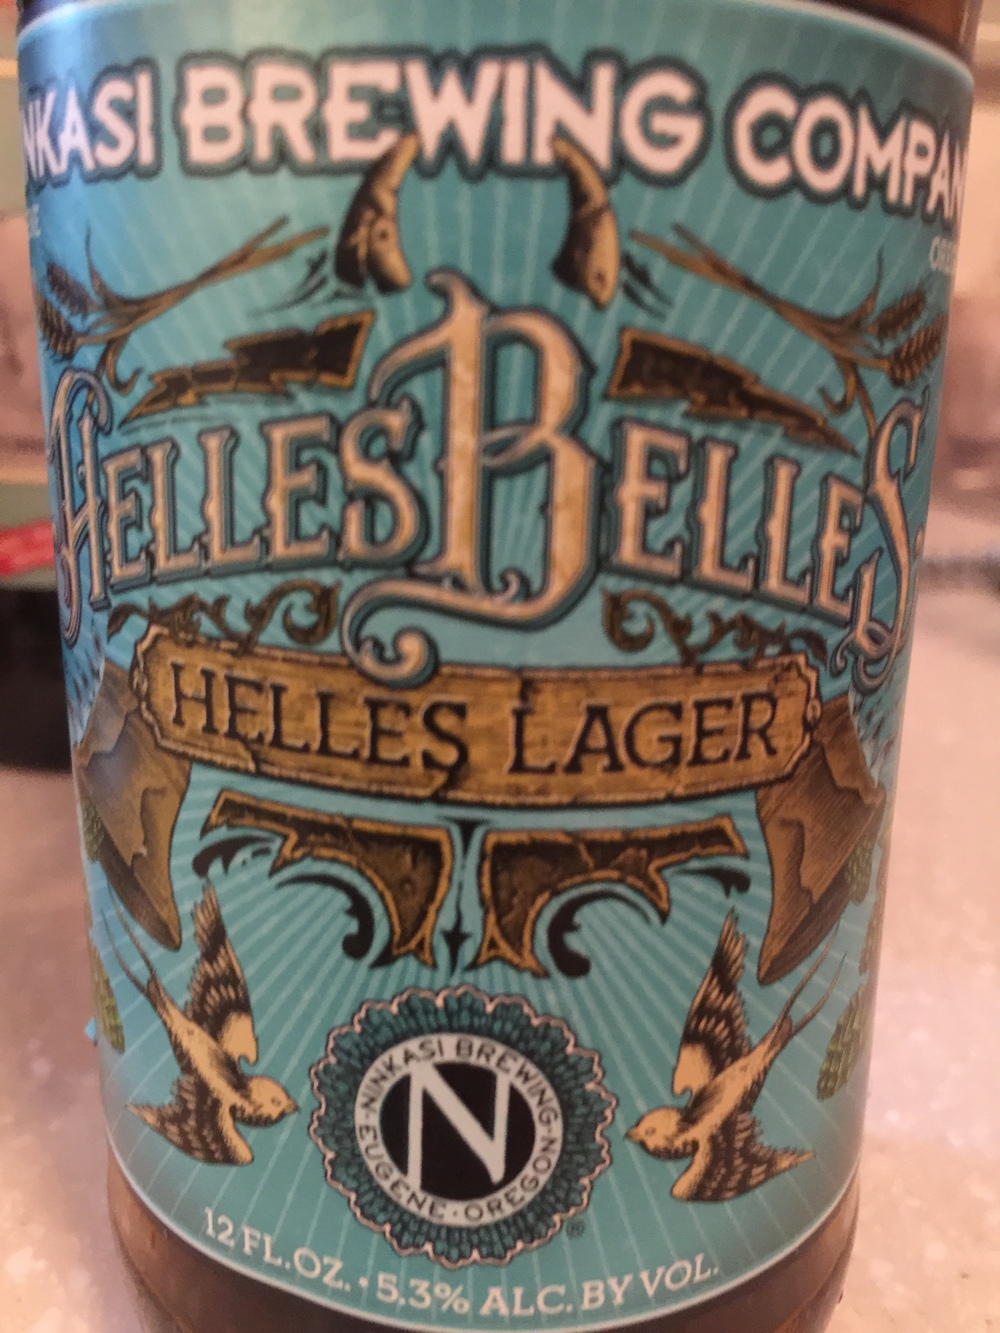 Ninkasi Helles Belles Helles Lager   A sweet, sweet lager. Cool and refreshing, a grade above your cheap lagers that you can grab off the shelf. Ninkasi knocks it out of the park with this lager.  Rating: 7.25/10